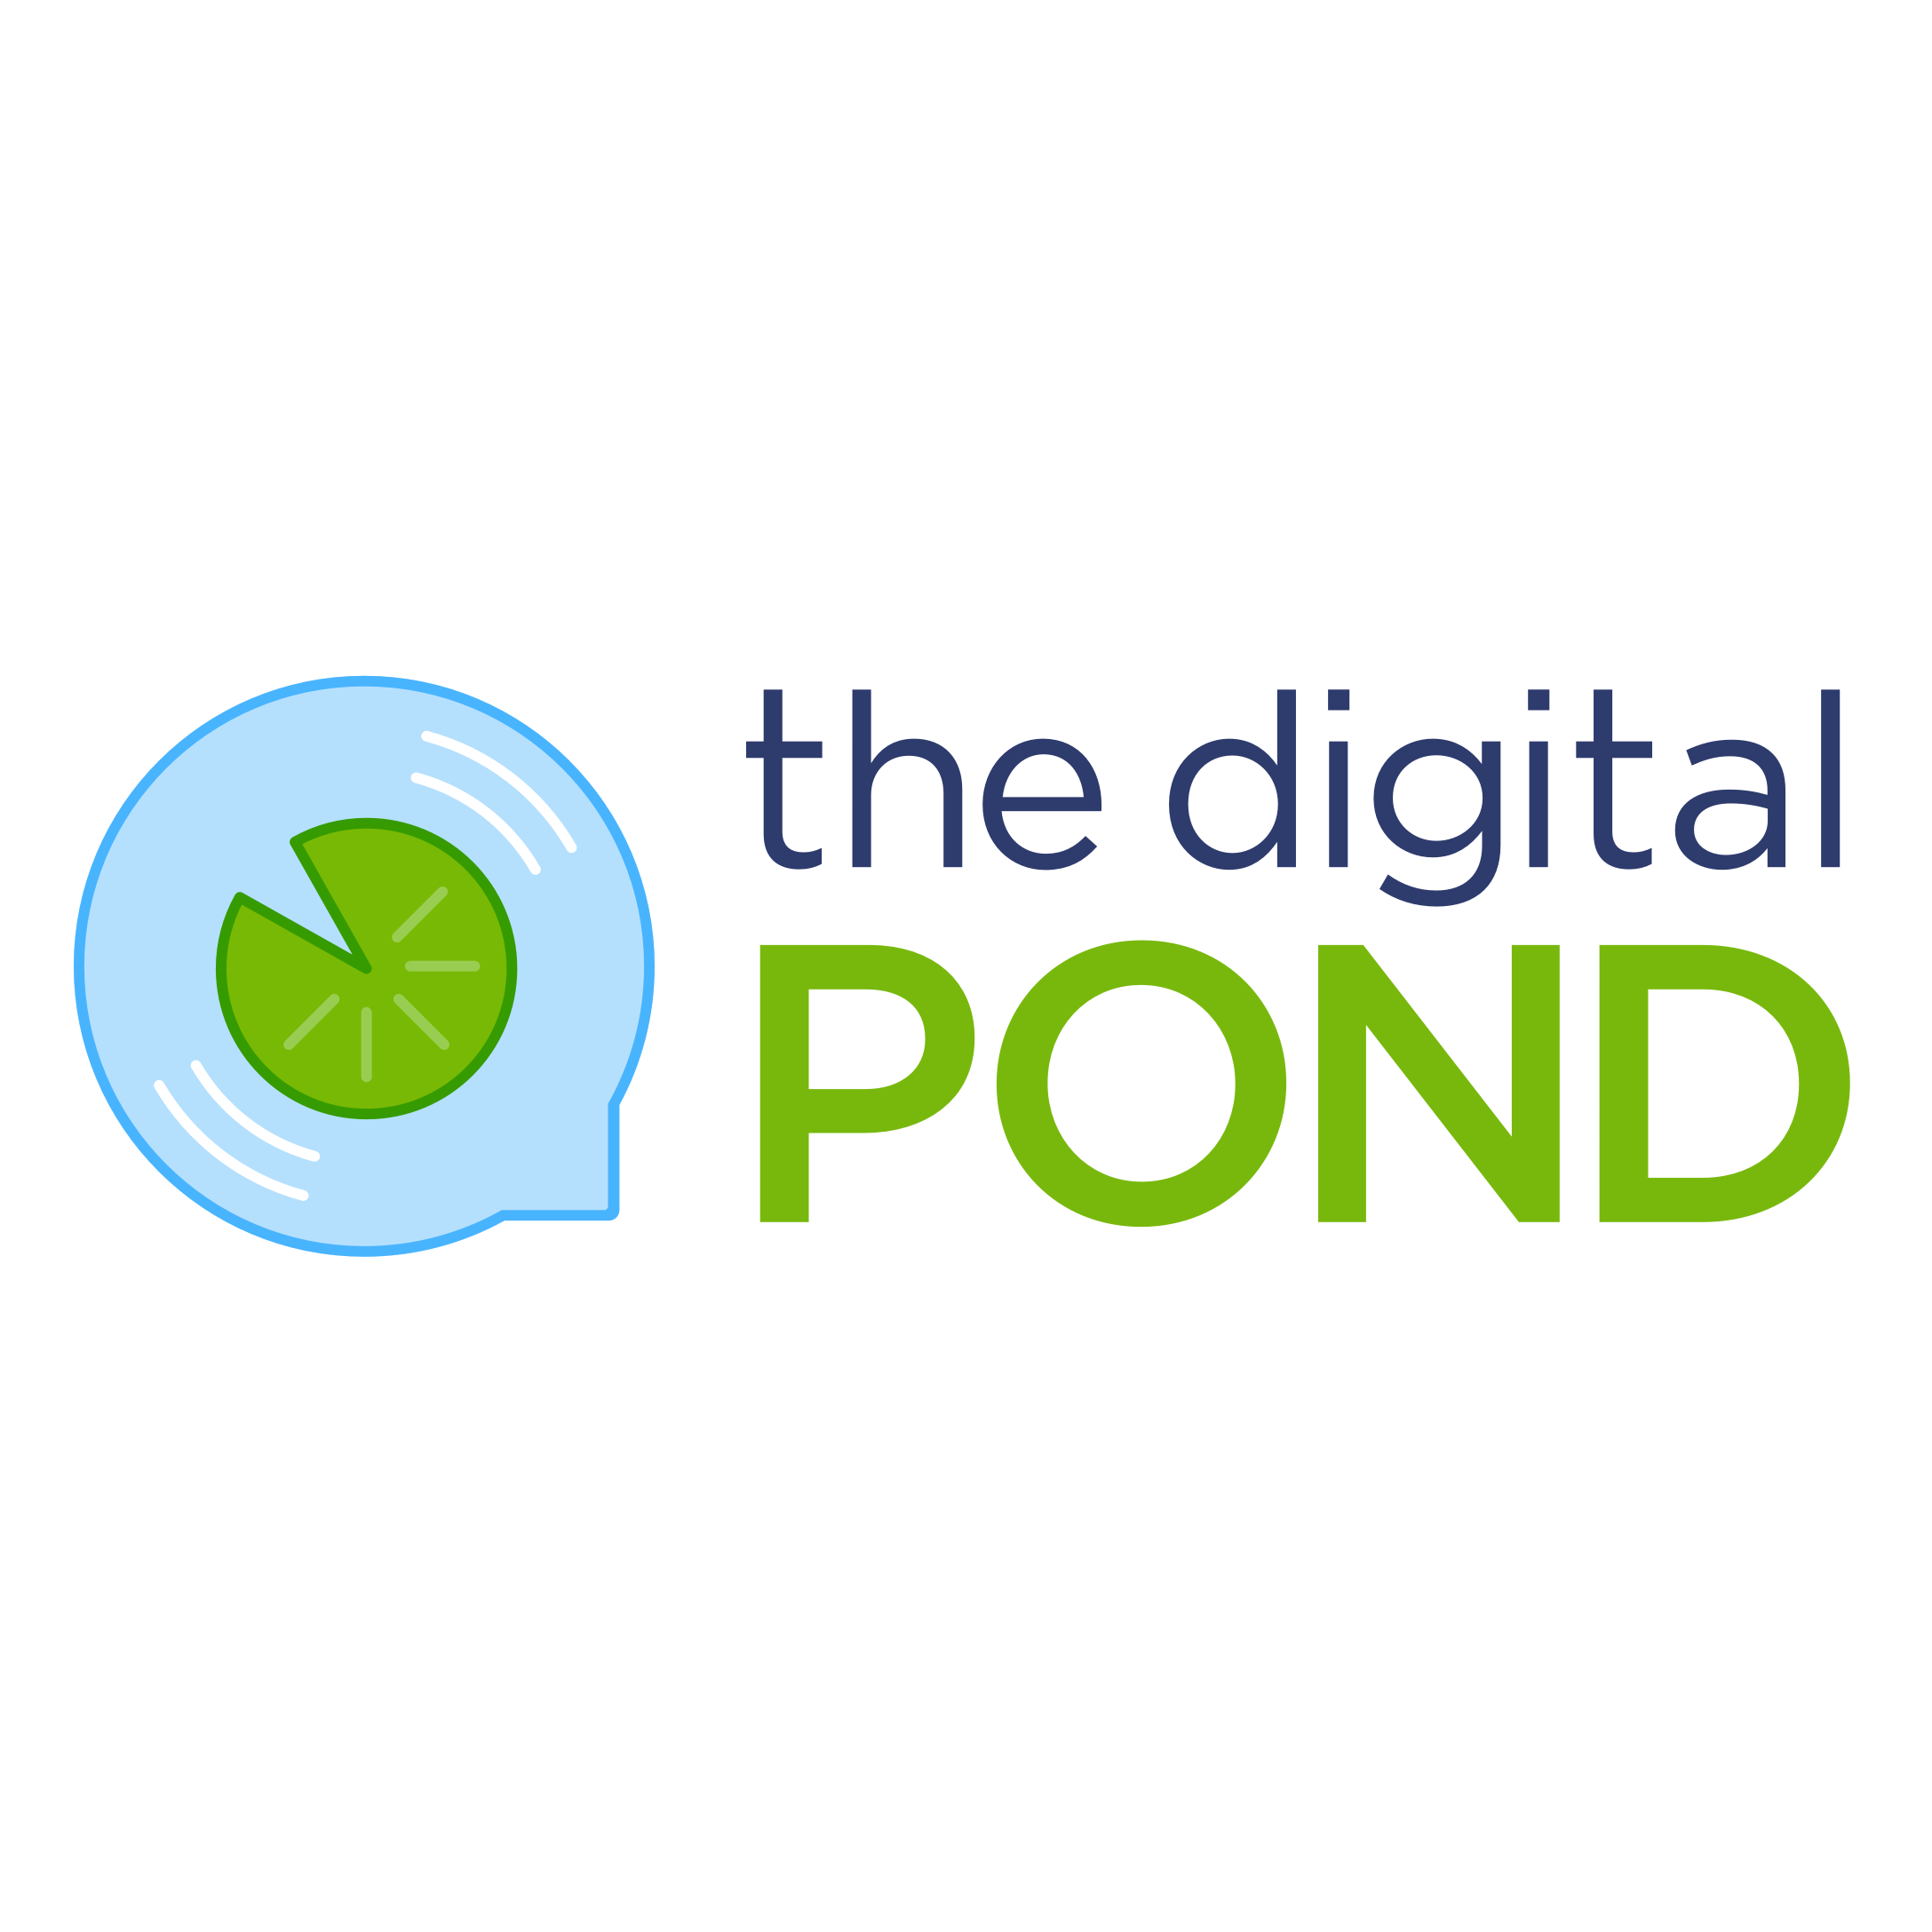 The Digital Pond image